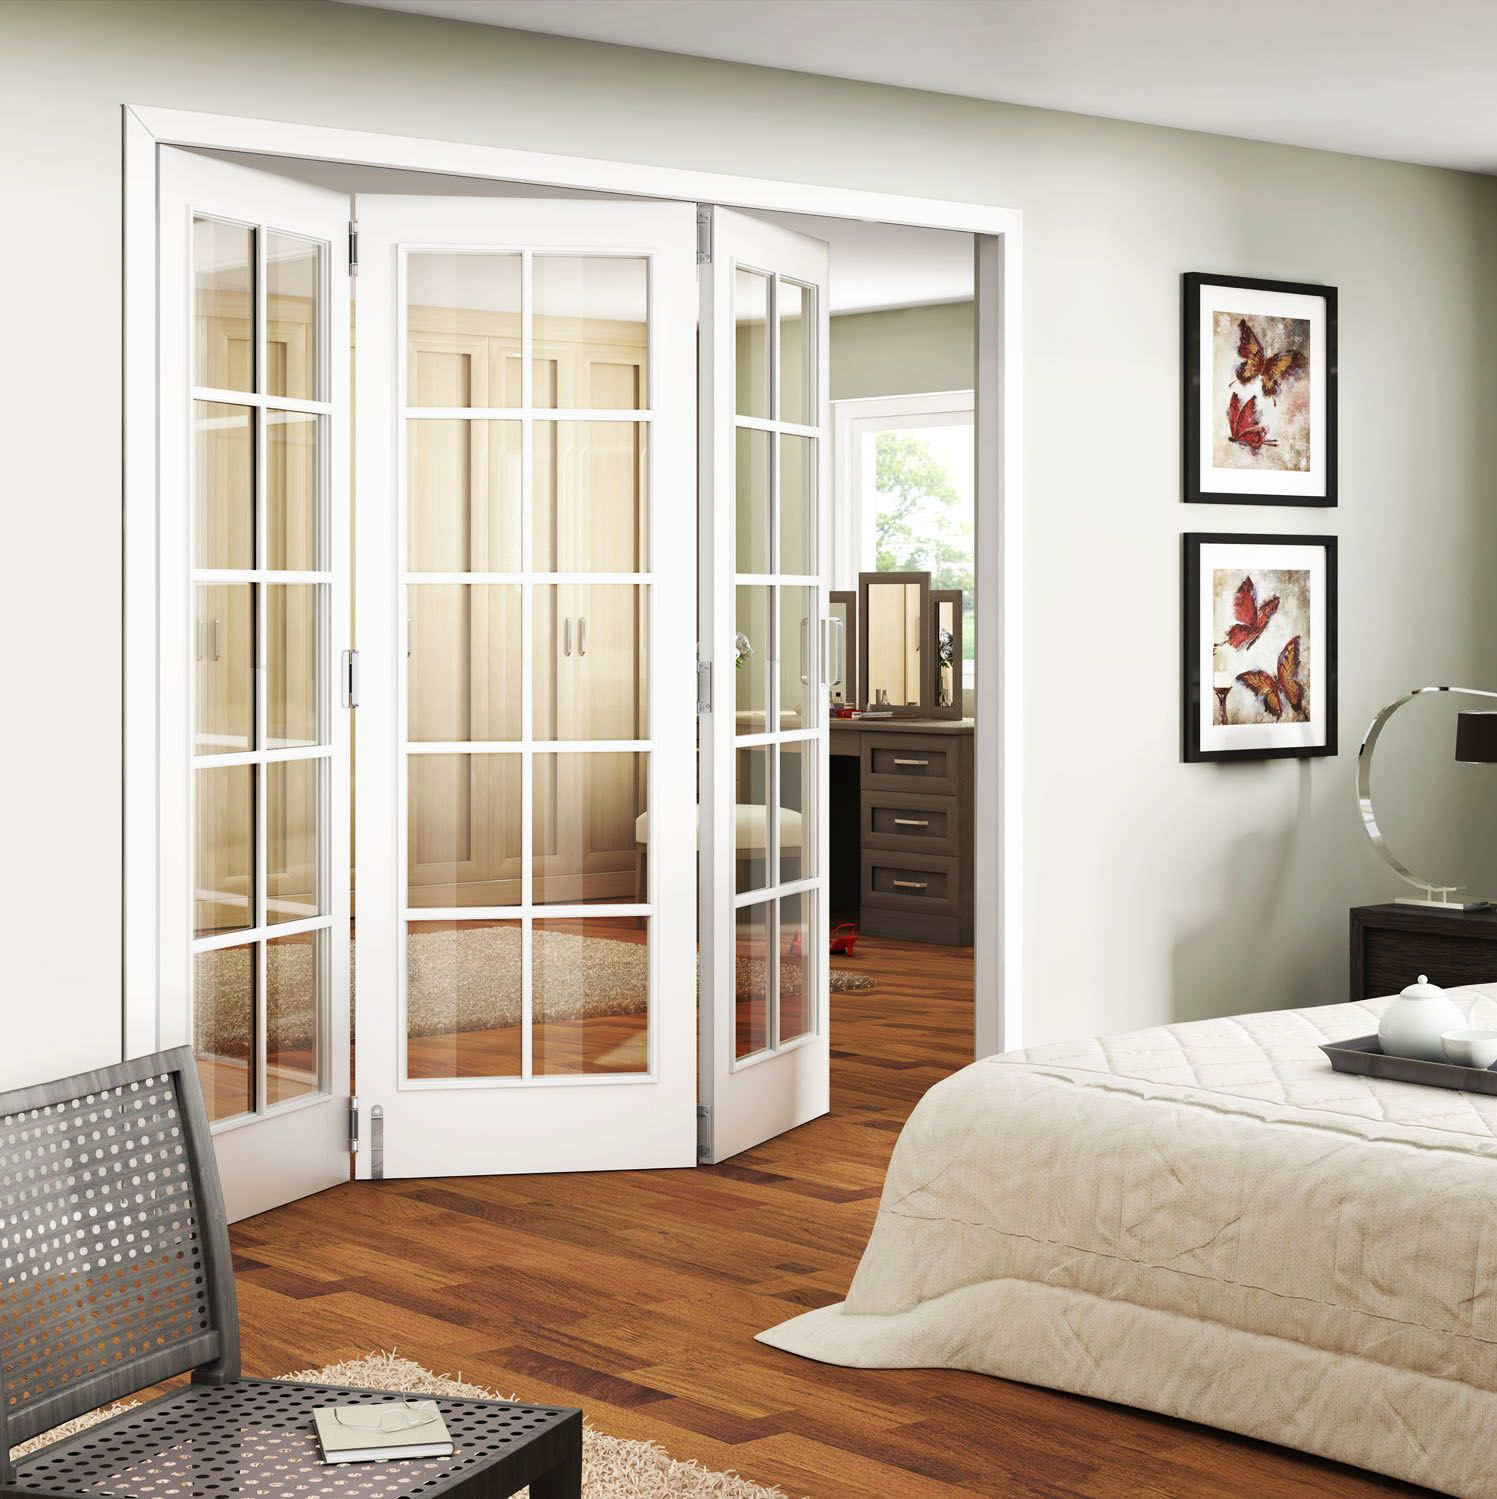 Interior Sliding Double Doors image result for sliding wall partition glass french | living room